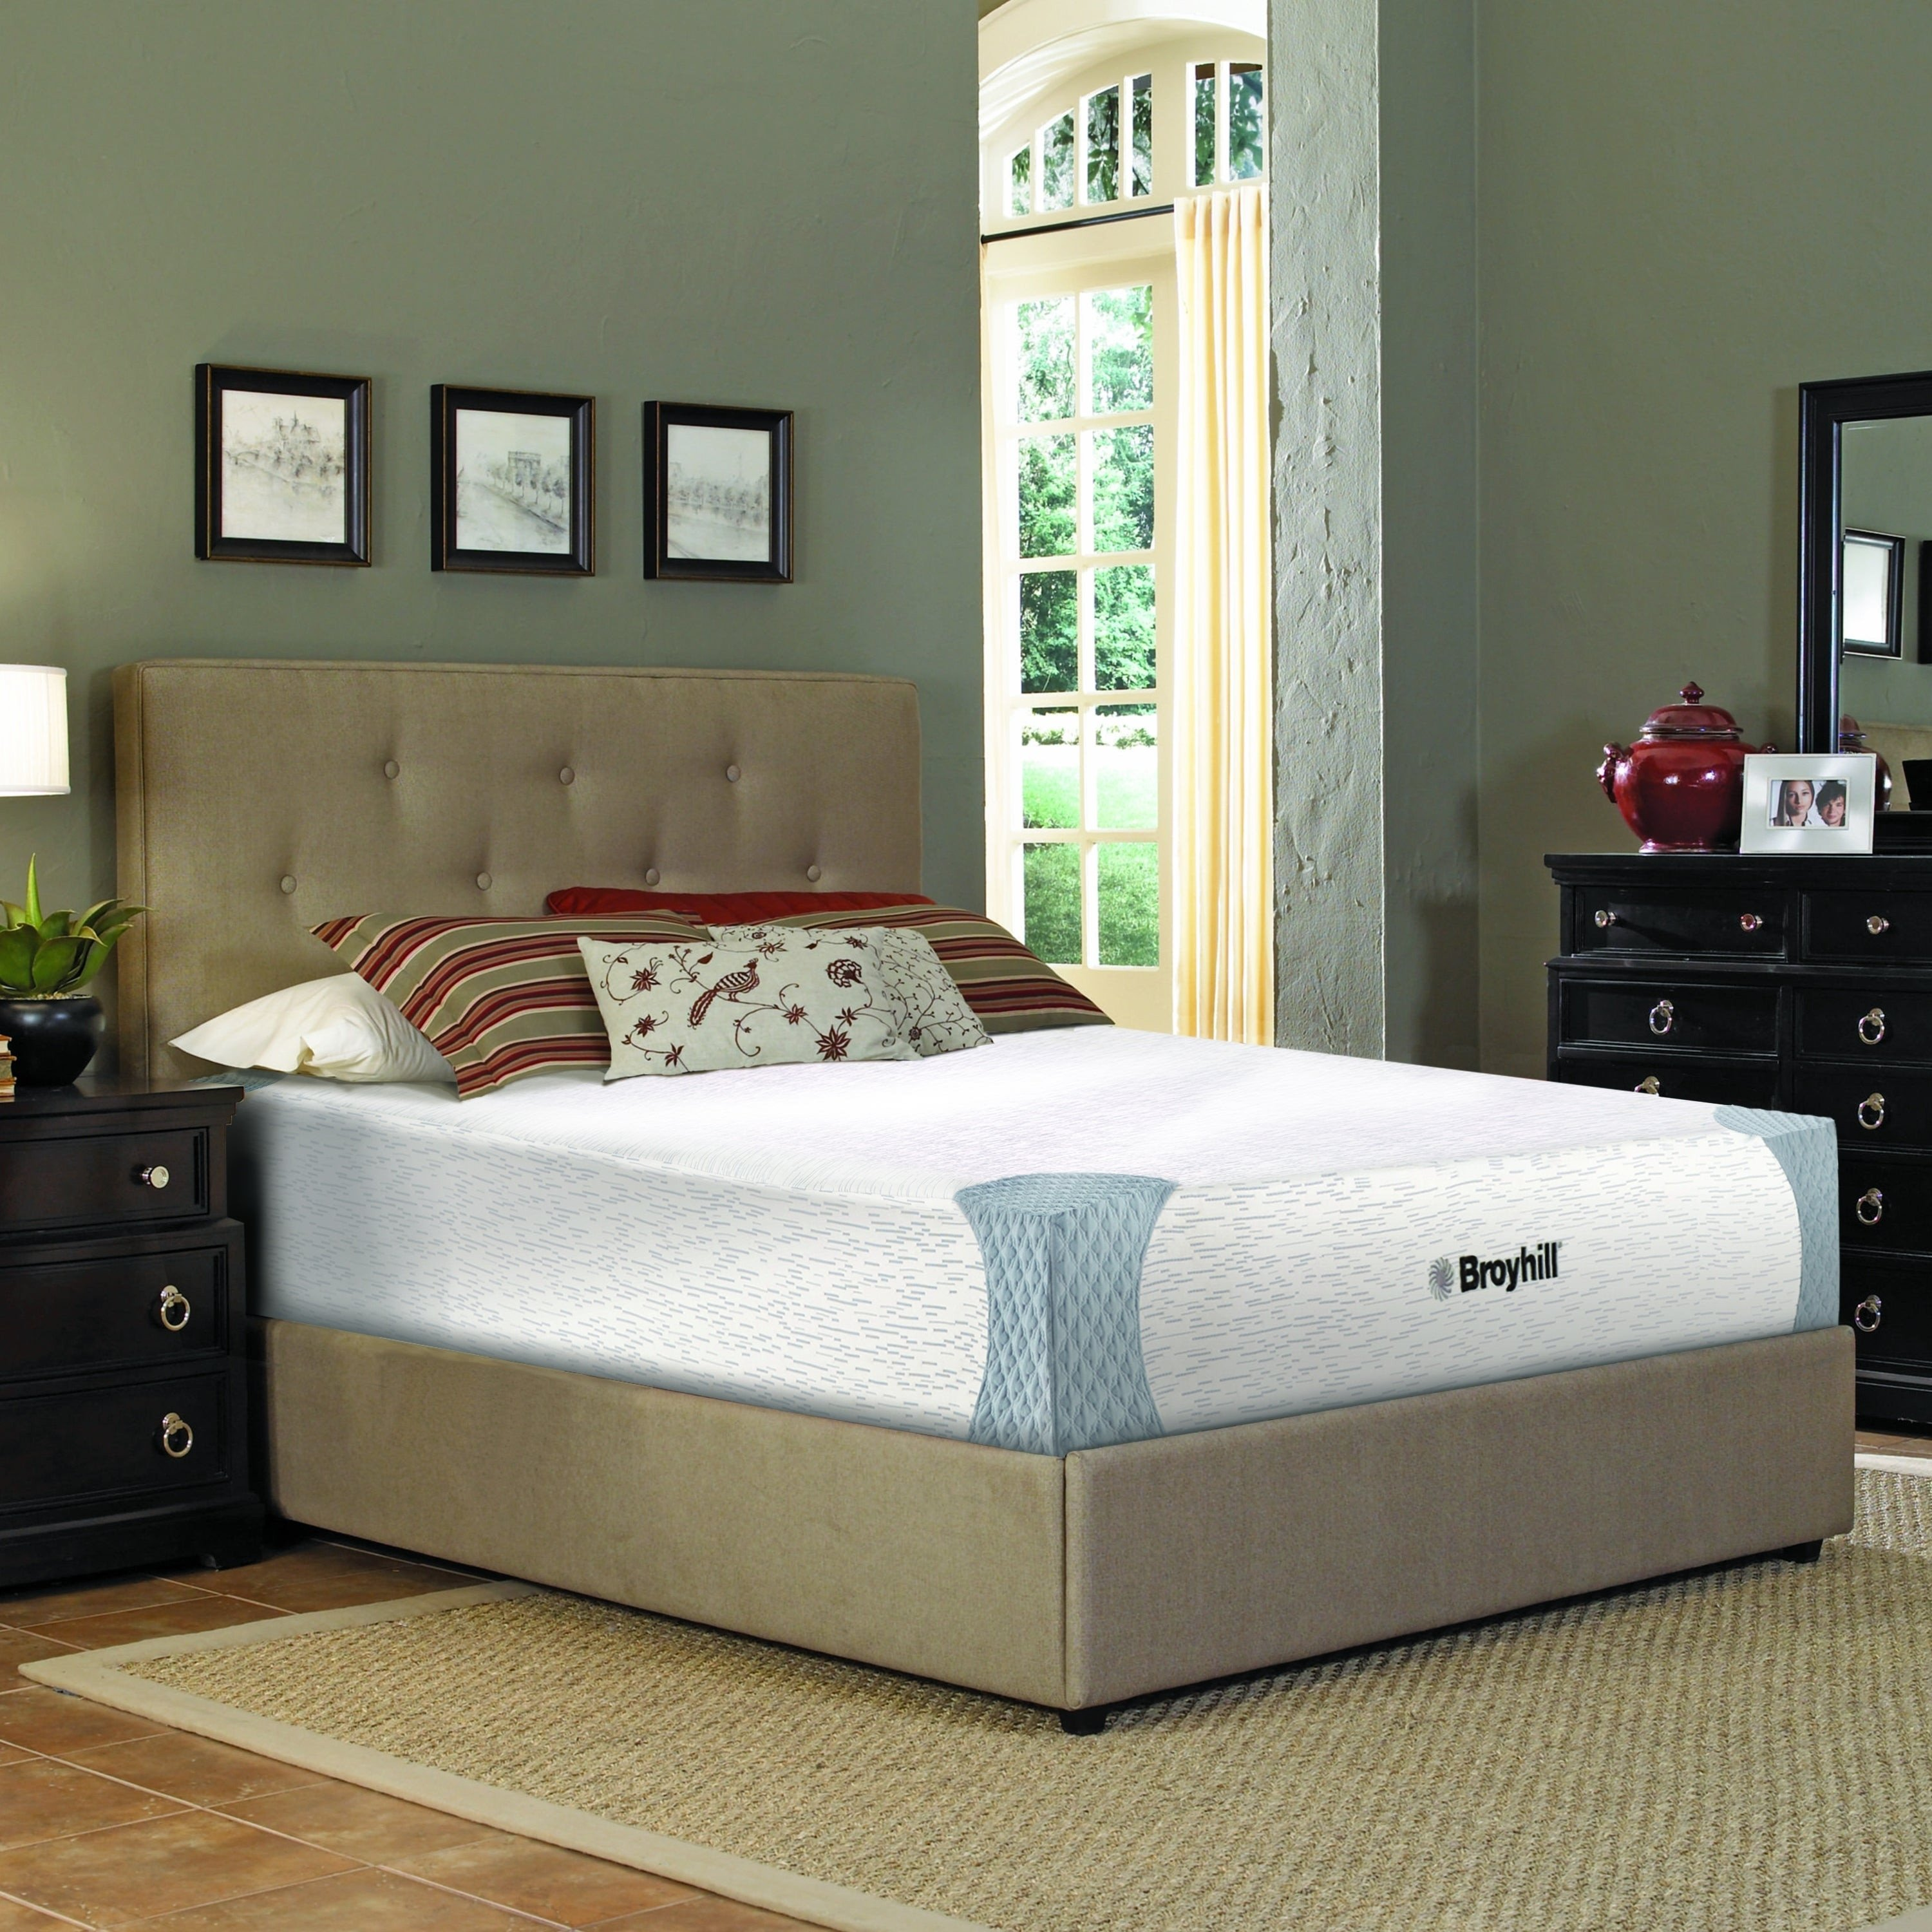 Broyhill King Bedroom Set Unique Buy Broyhill Mattresses Sale Line at Overstock